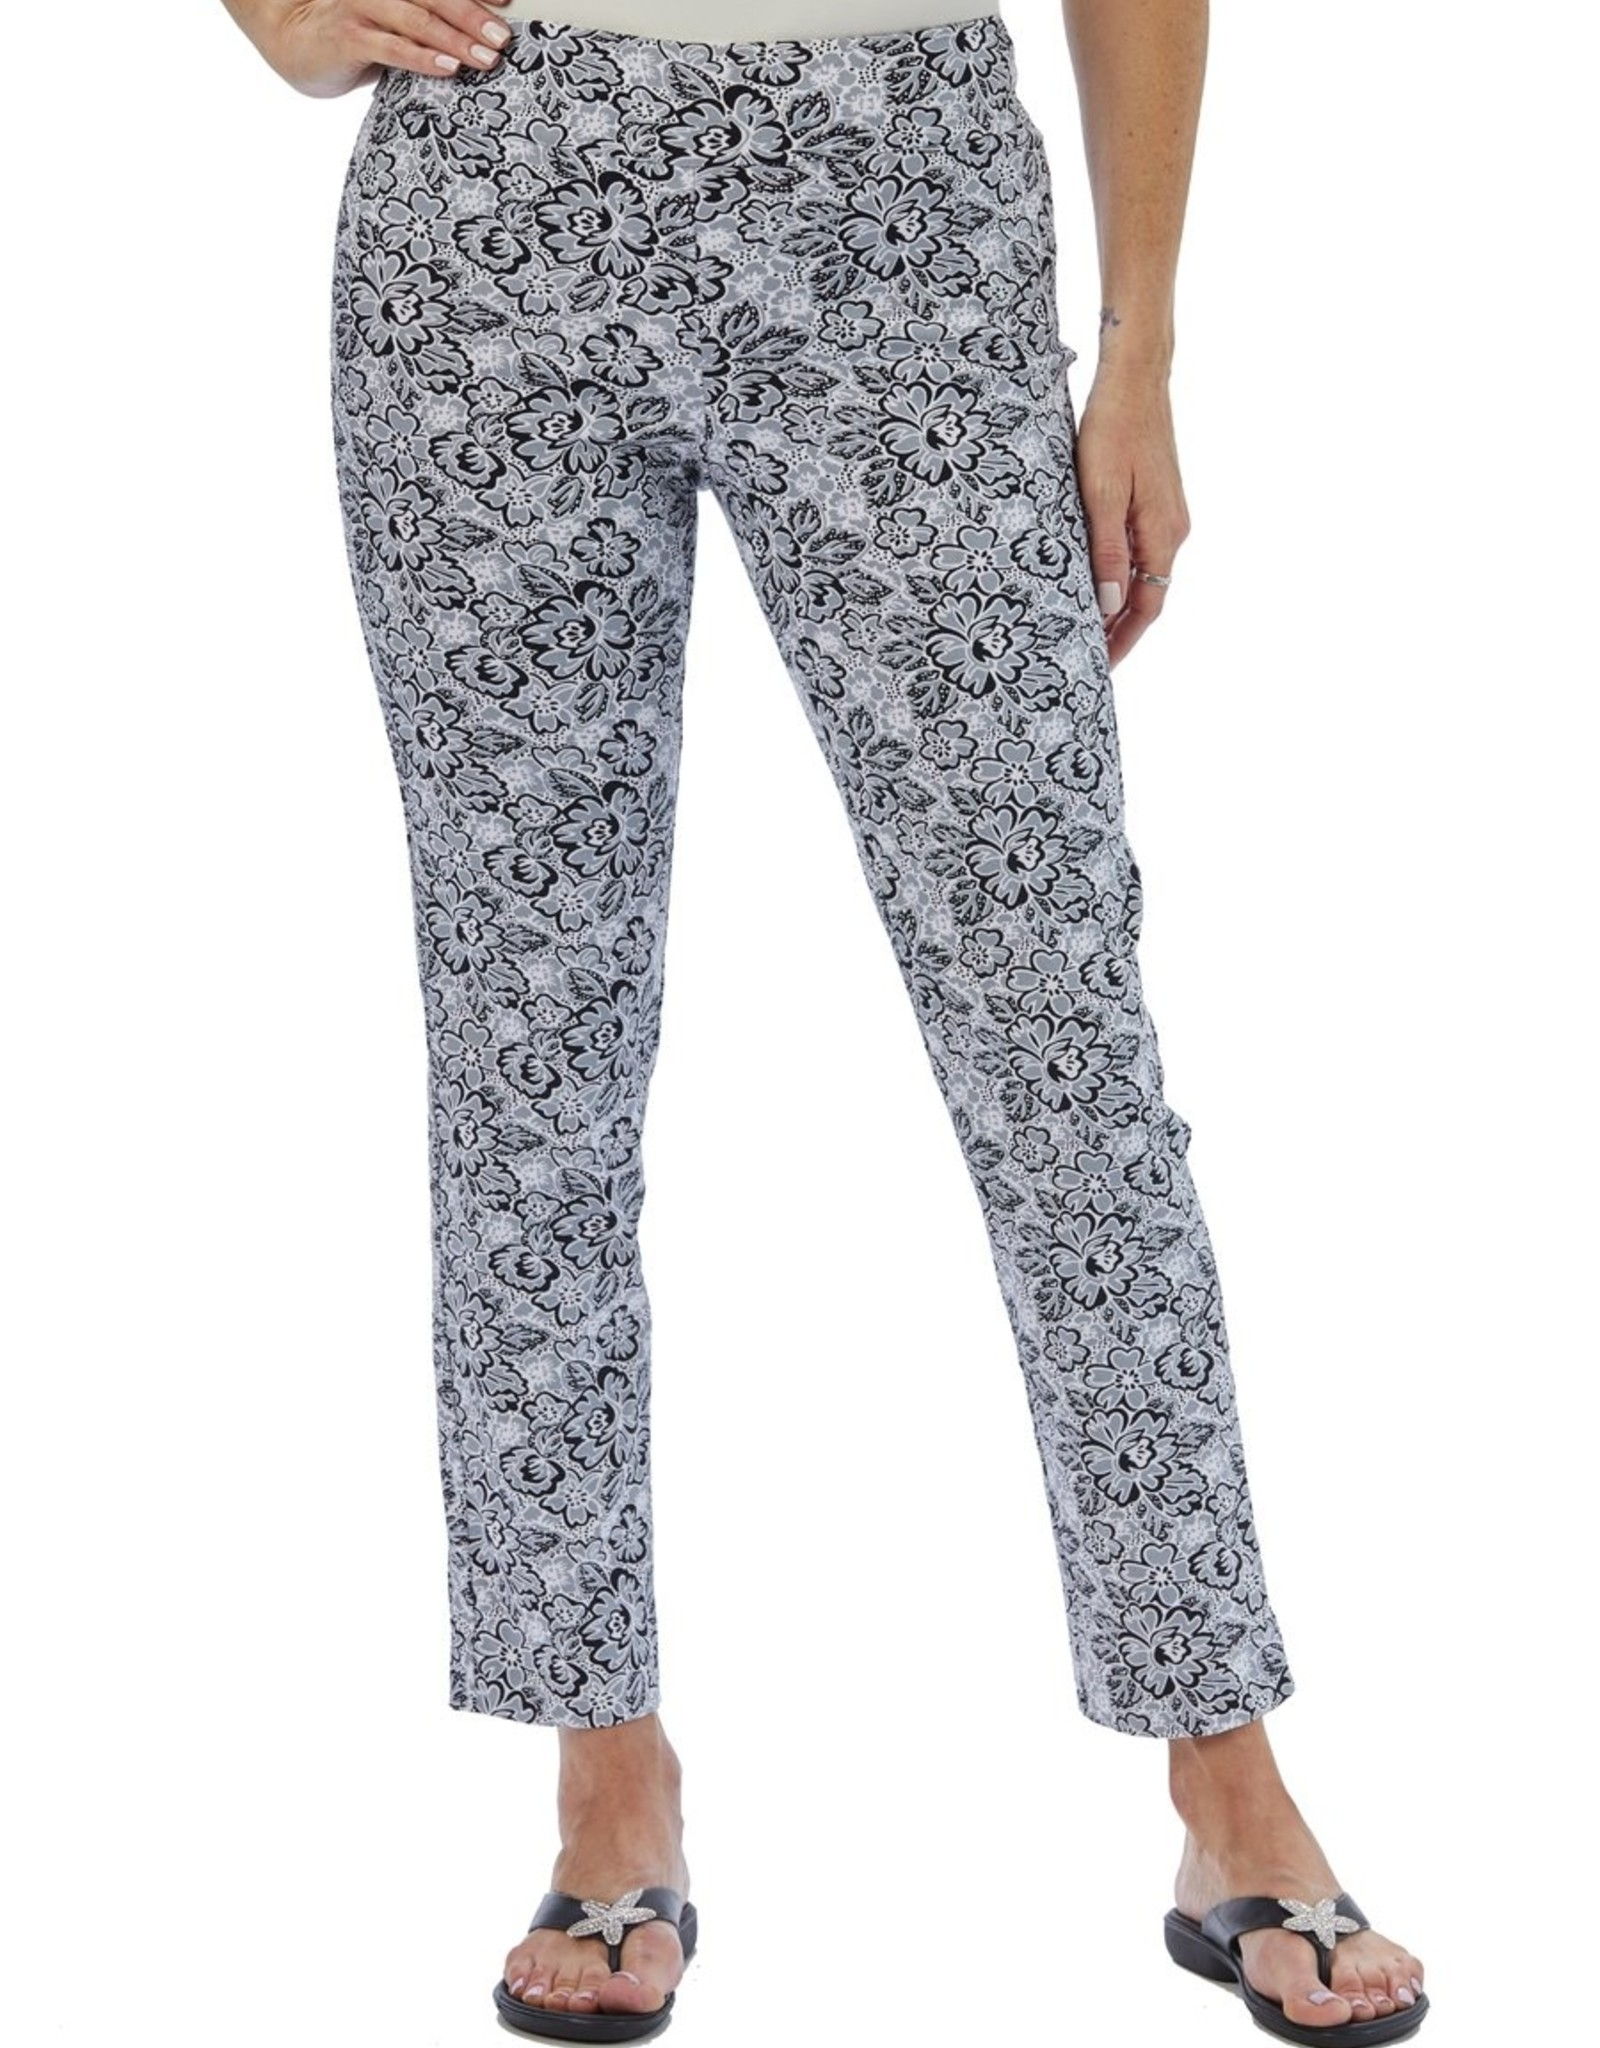 Krazy Larry Pant Krazy Larry's Silver Flowers Pull on Pant